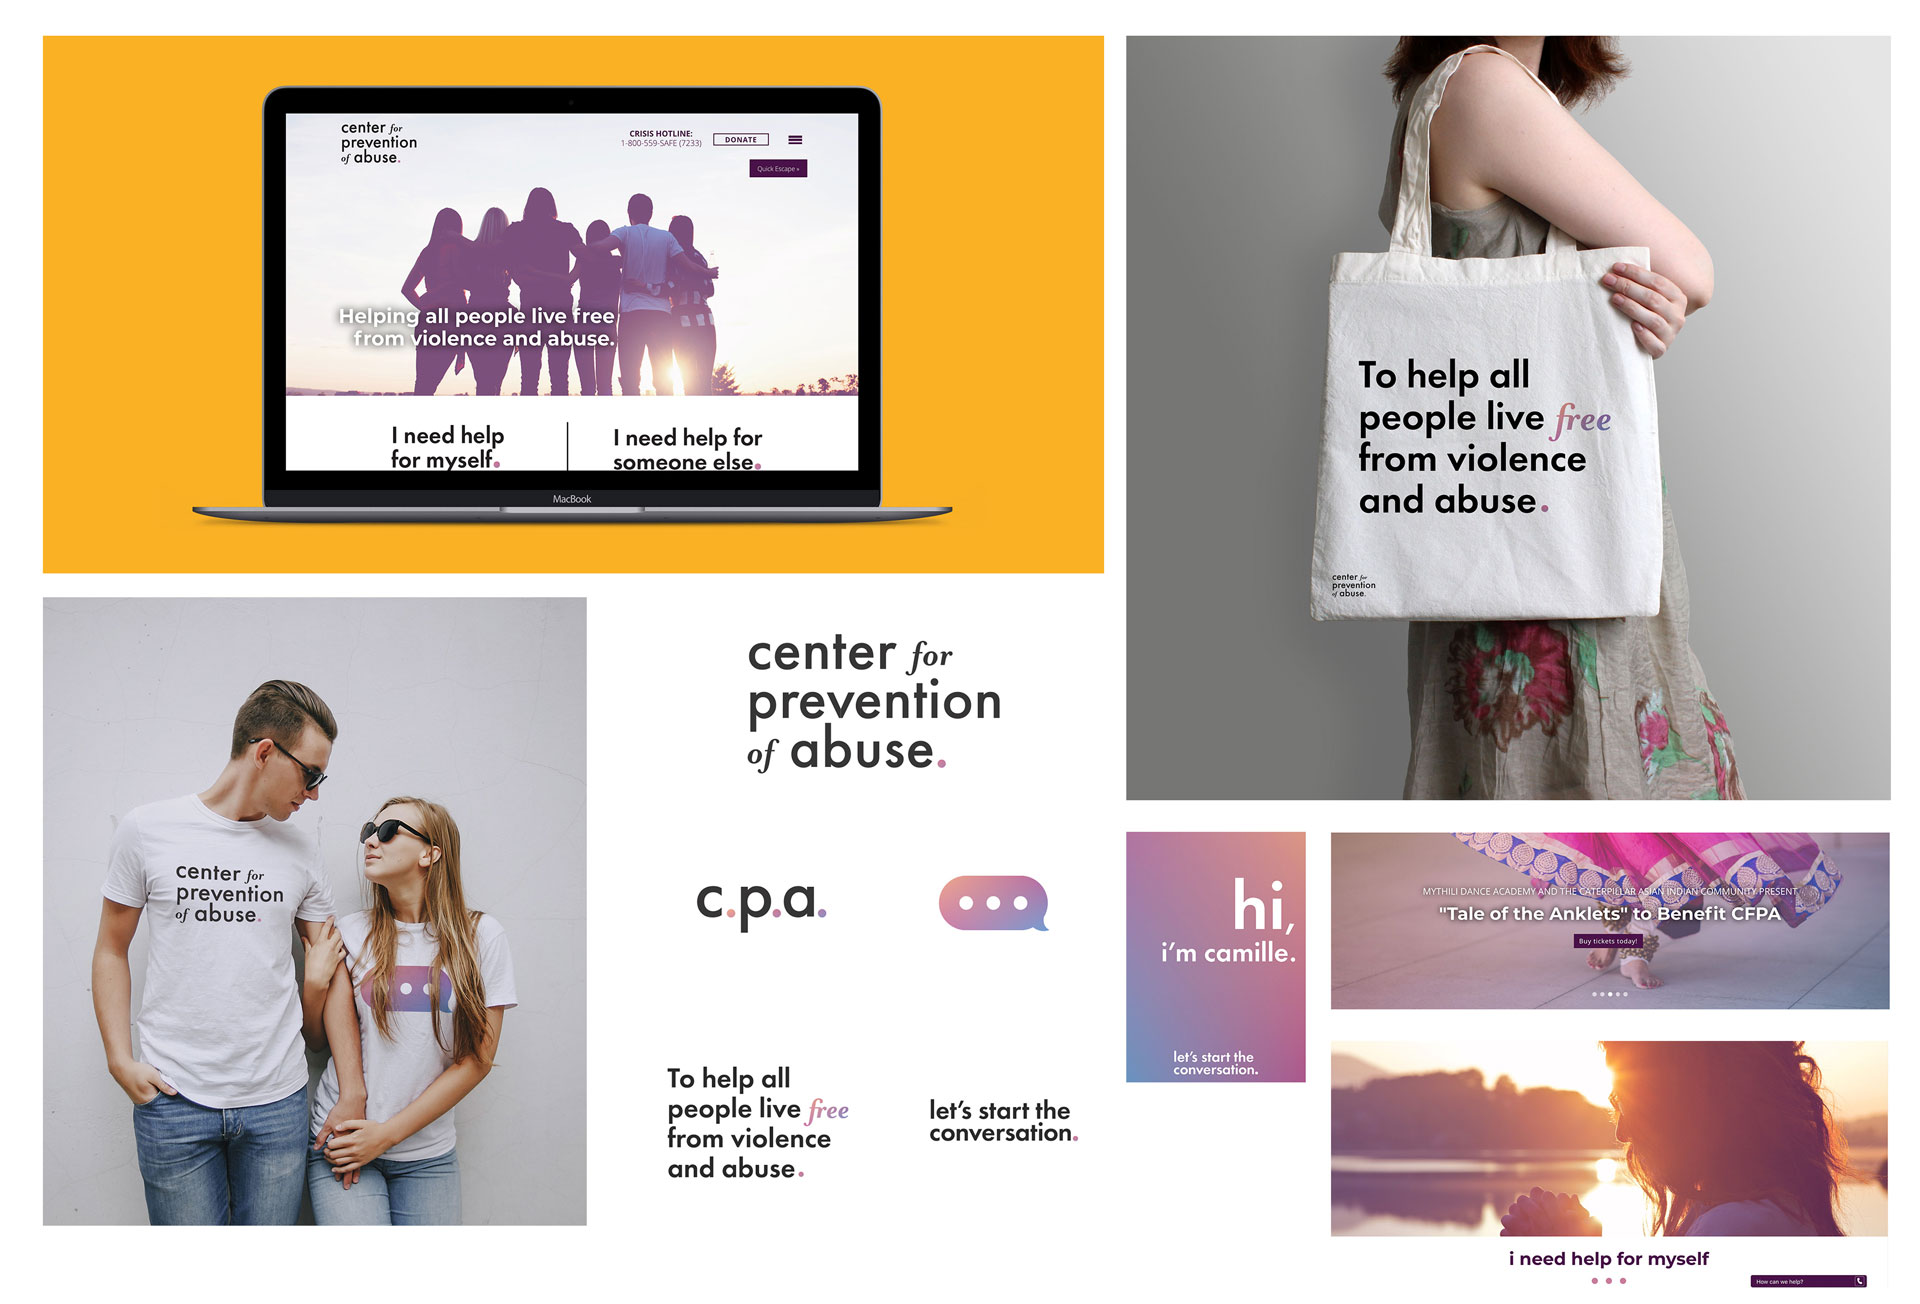 center for prevention of abuse coordinated brand image done by mcdaniels marketing